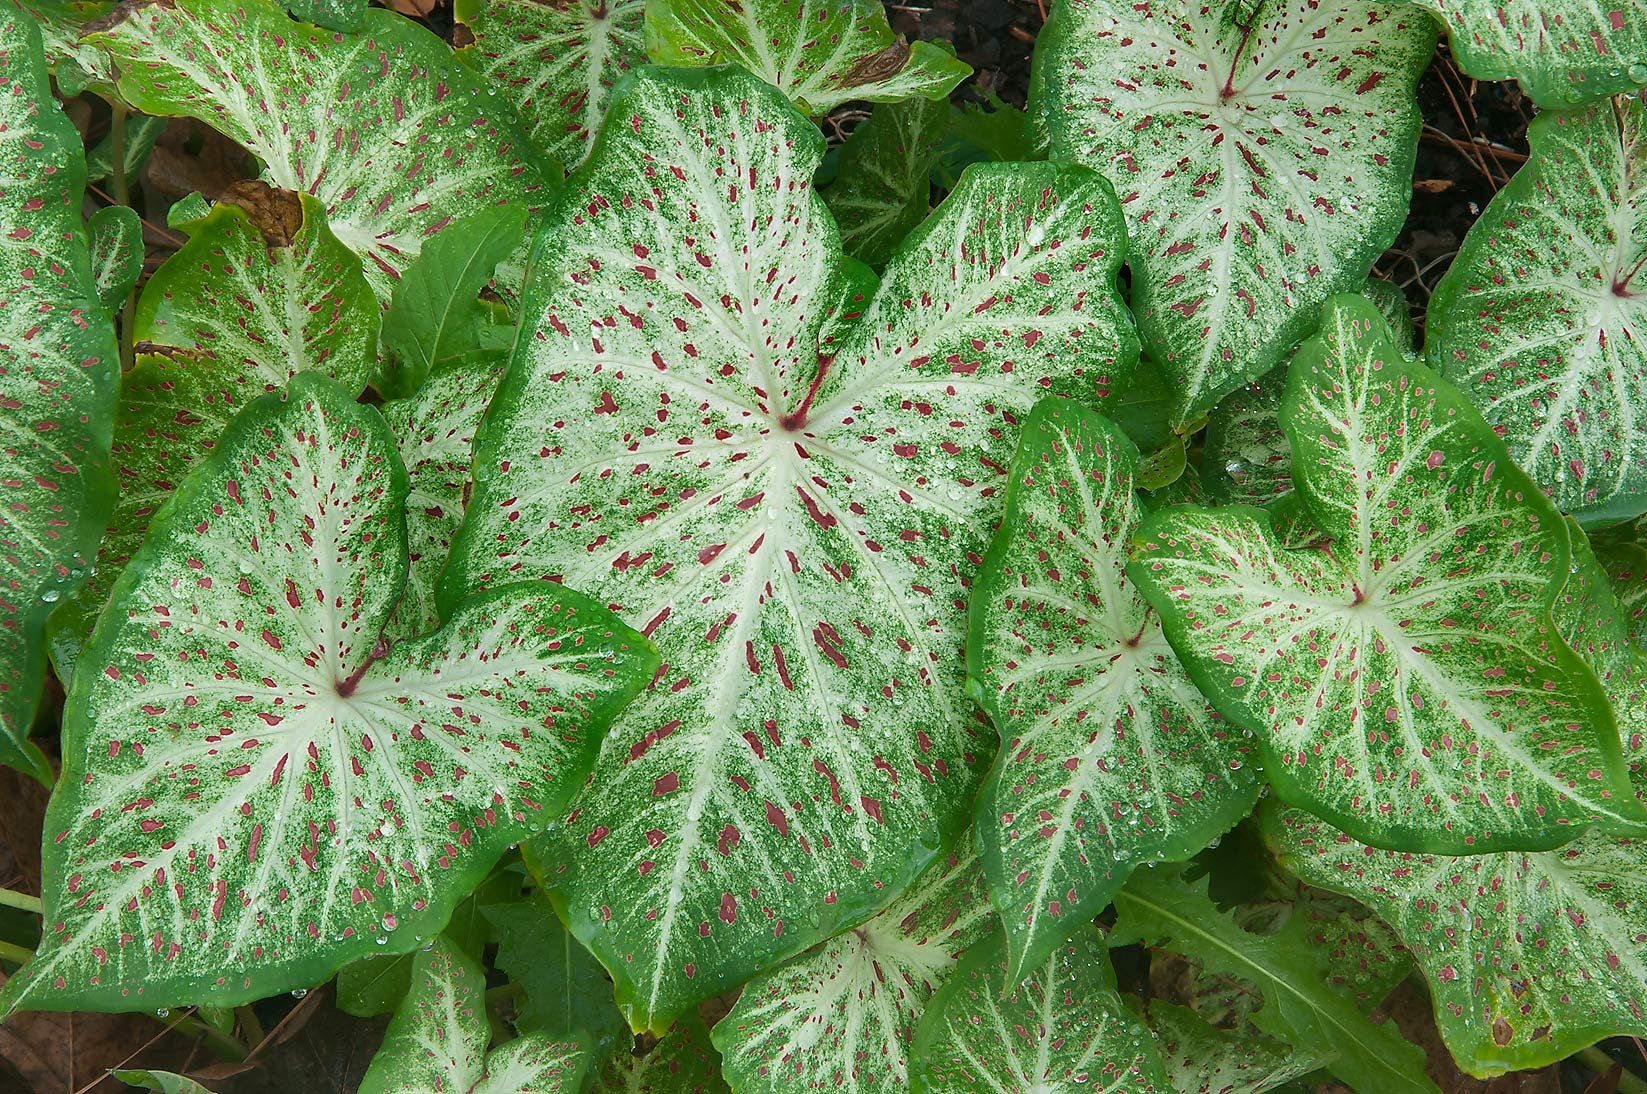 White and green caladium leaves in Mercer...Gardens. Humble (Houston area), Texas